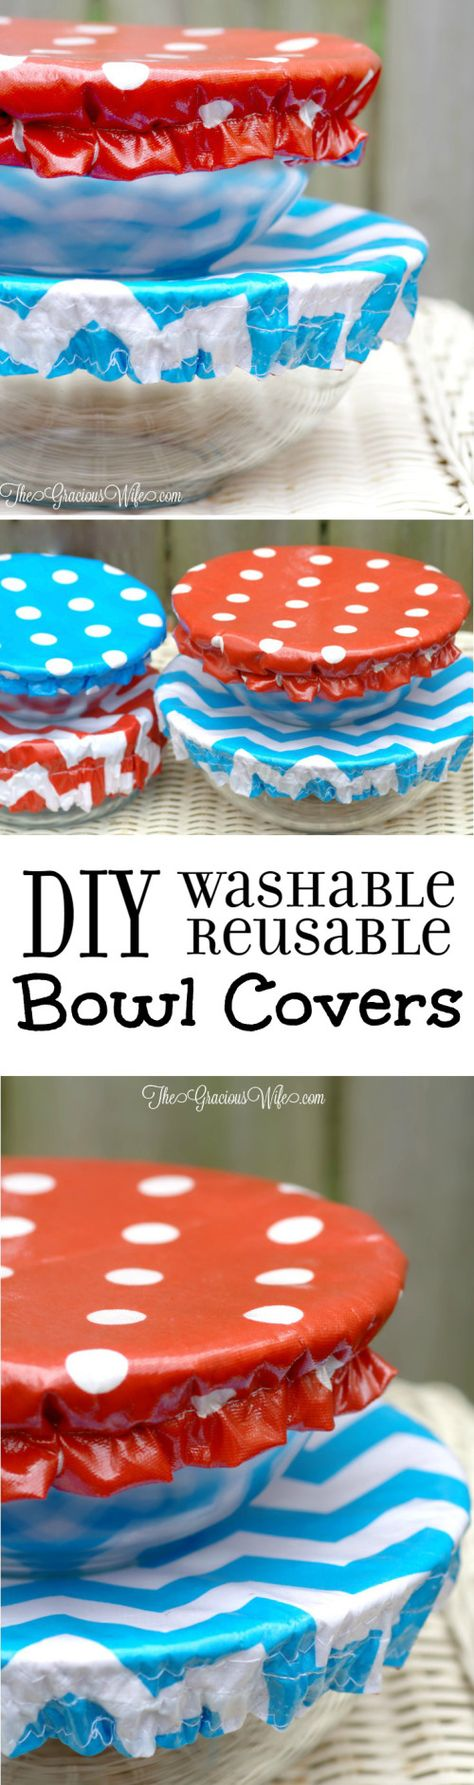 Überzug für Schüsseln aus Wachstischdecke nähen -  Washable Reusable Bowl Covers - Sew these fun and easy reusable bowl cover DIY sewing project. Great for Summer! |DIY Crafts